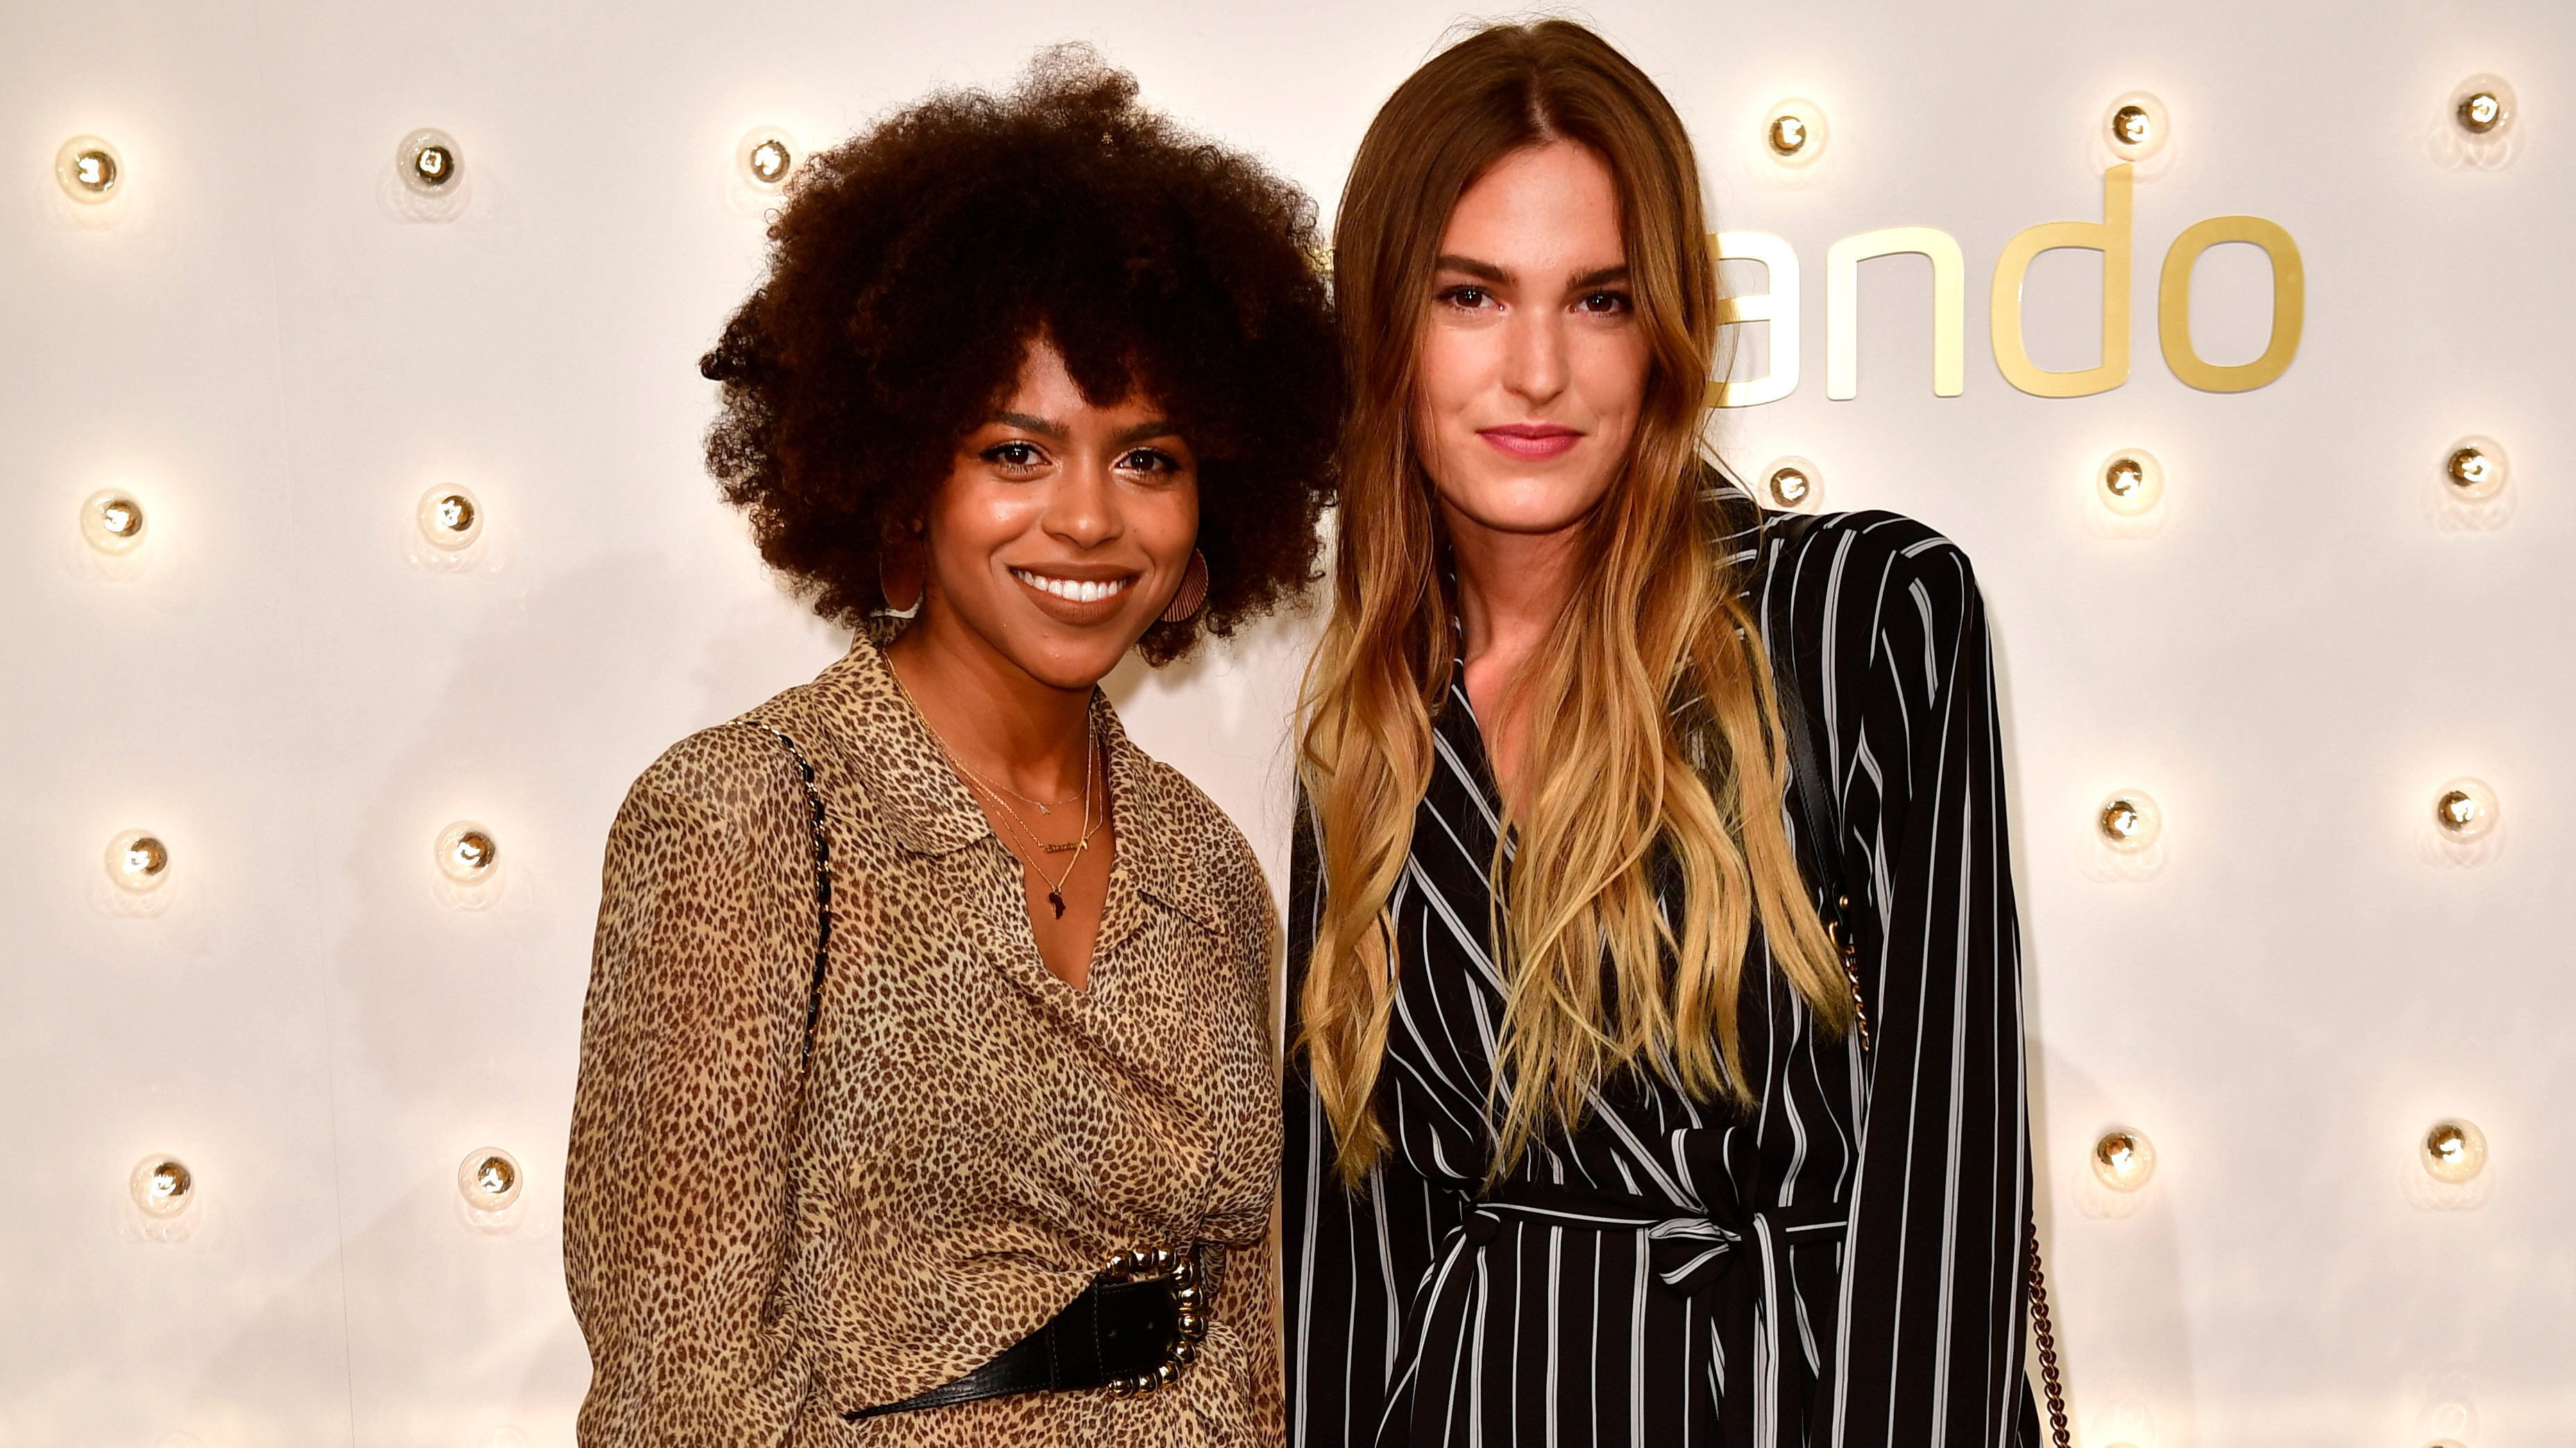 BERLIN, GERMANY - DECEMBER 13: Aminata Belli and Hannah Liza attend the Zalando xmas bash hosted by Alek Wek at Haus Ungarn on December 13, 2017 in Berlin, Germany. (Photo by Alexander Koerner/Getty Images for Zalando)